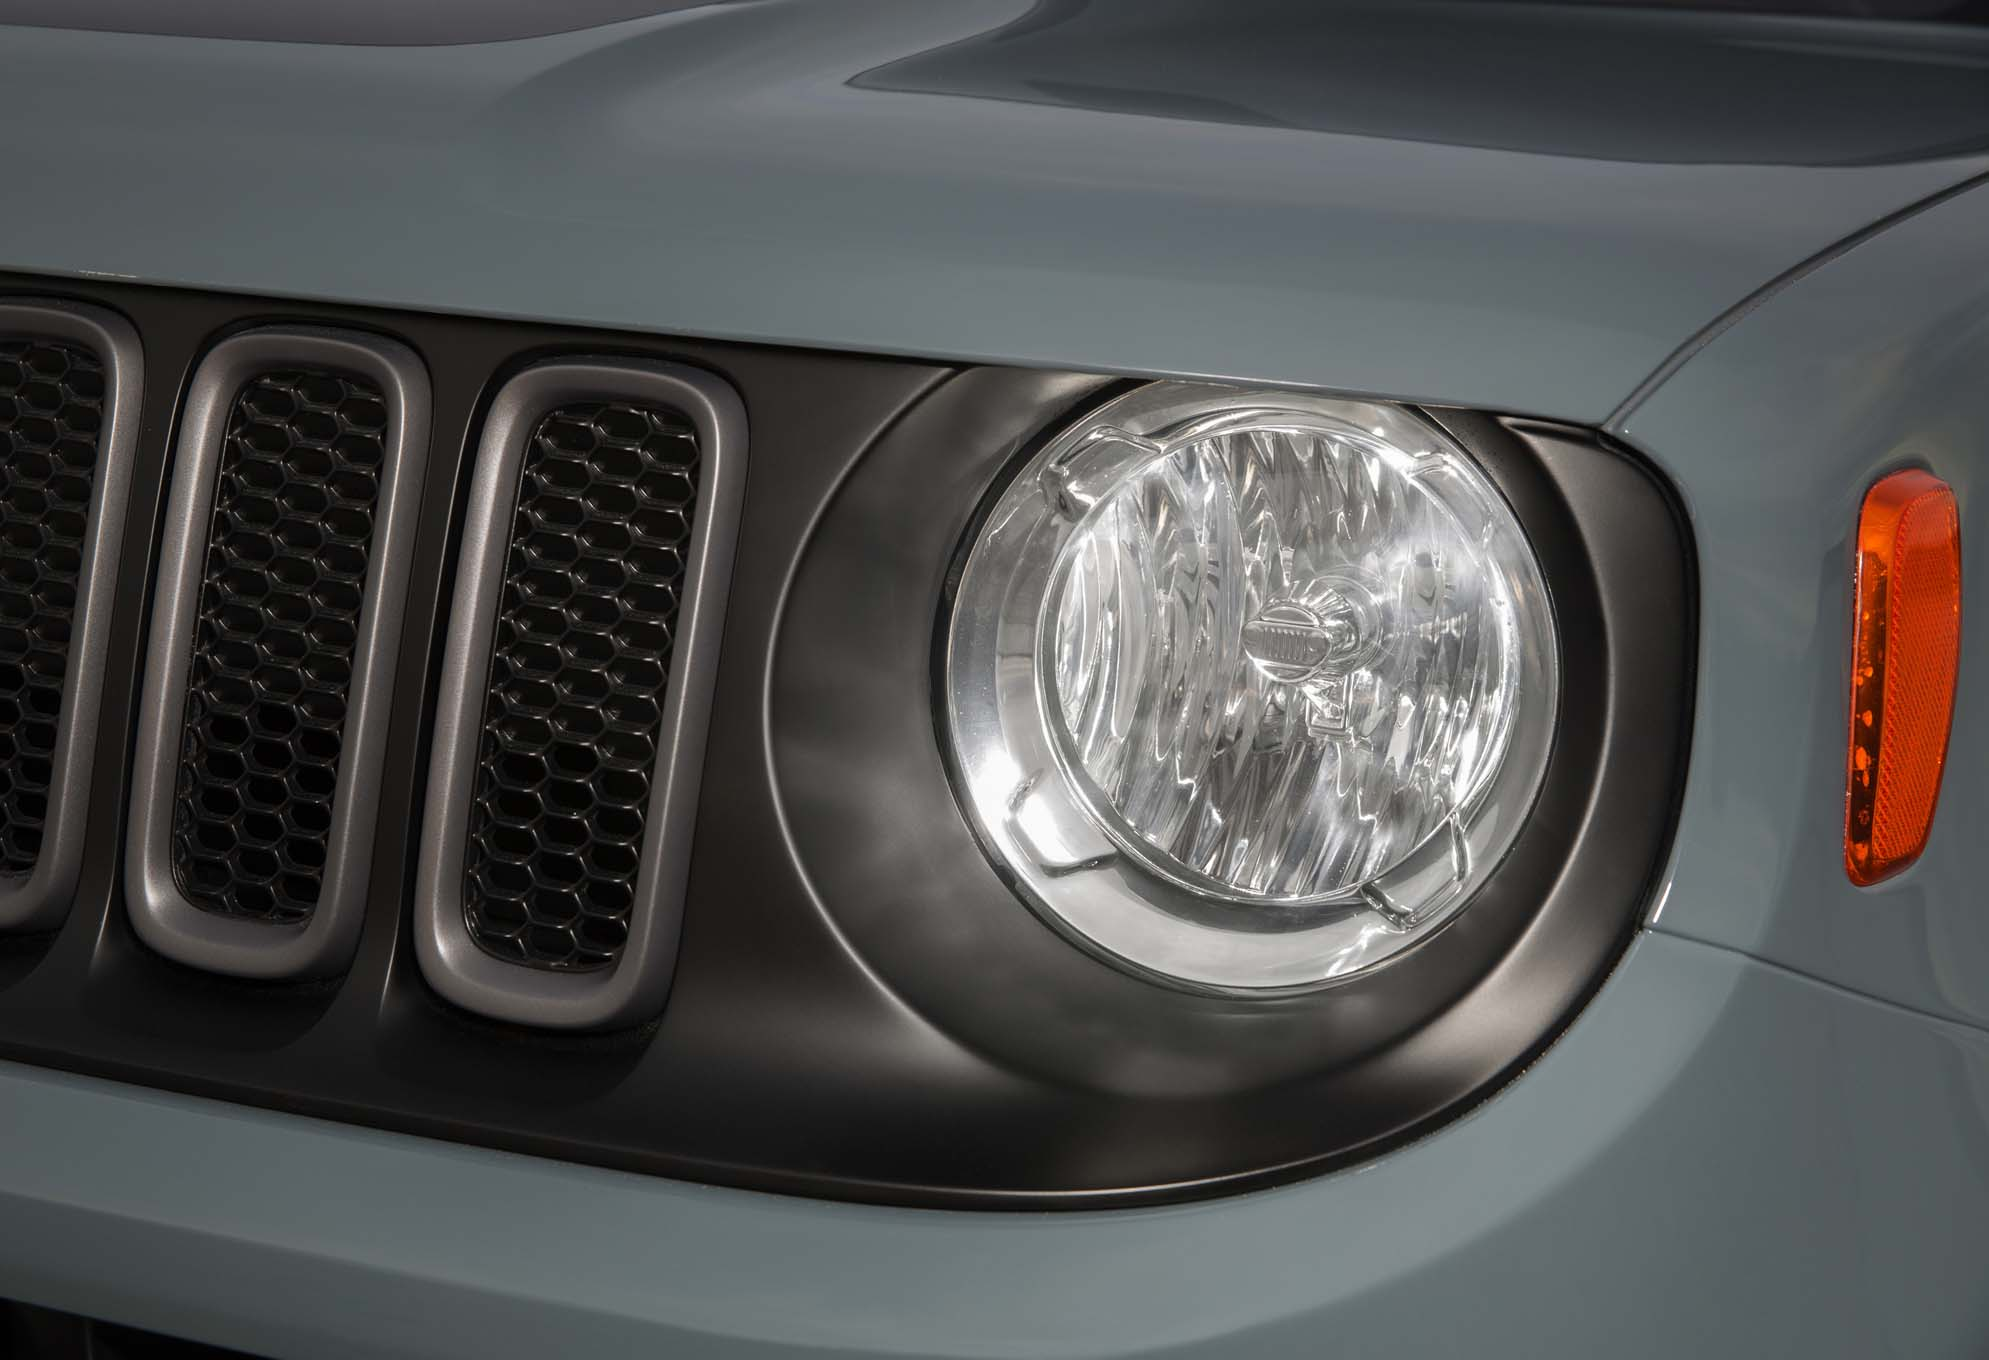 2015 Jeep Renegade Trailhawk headlamp